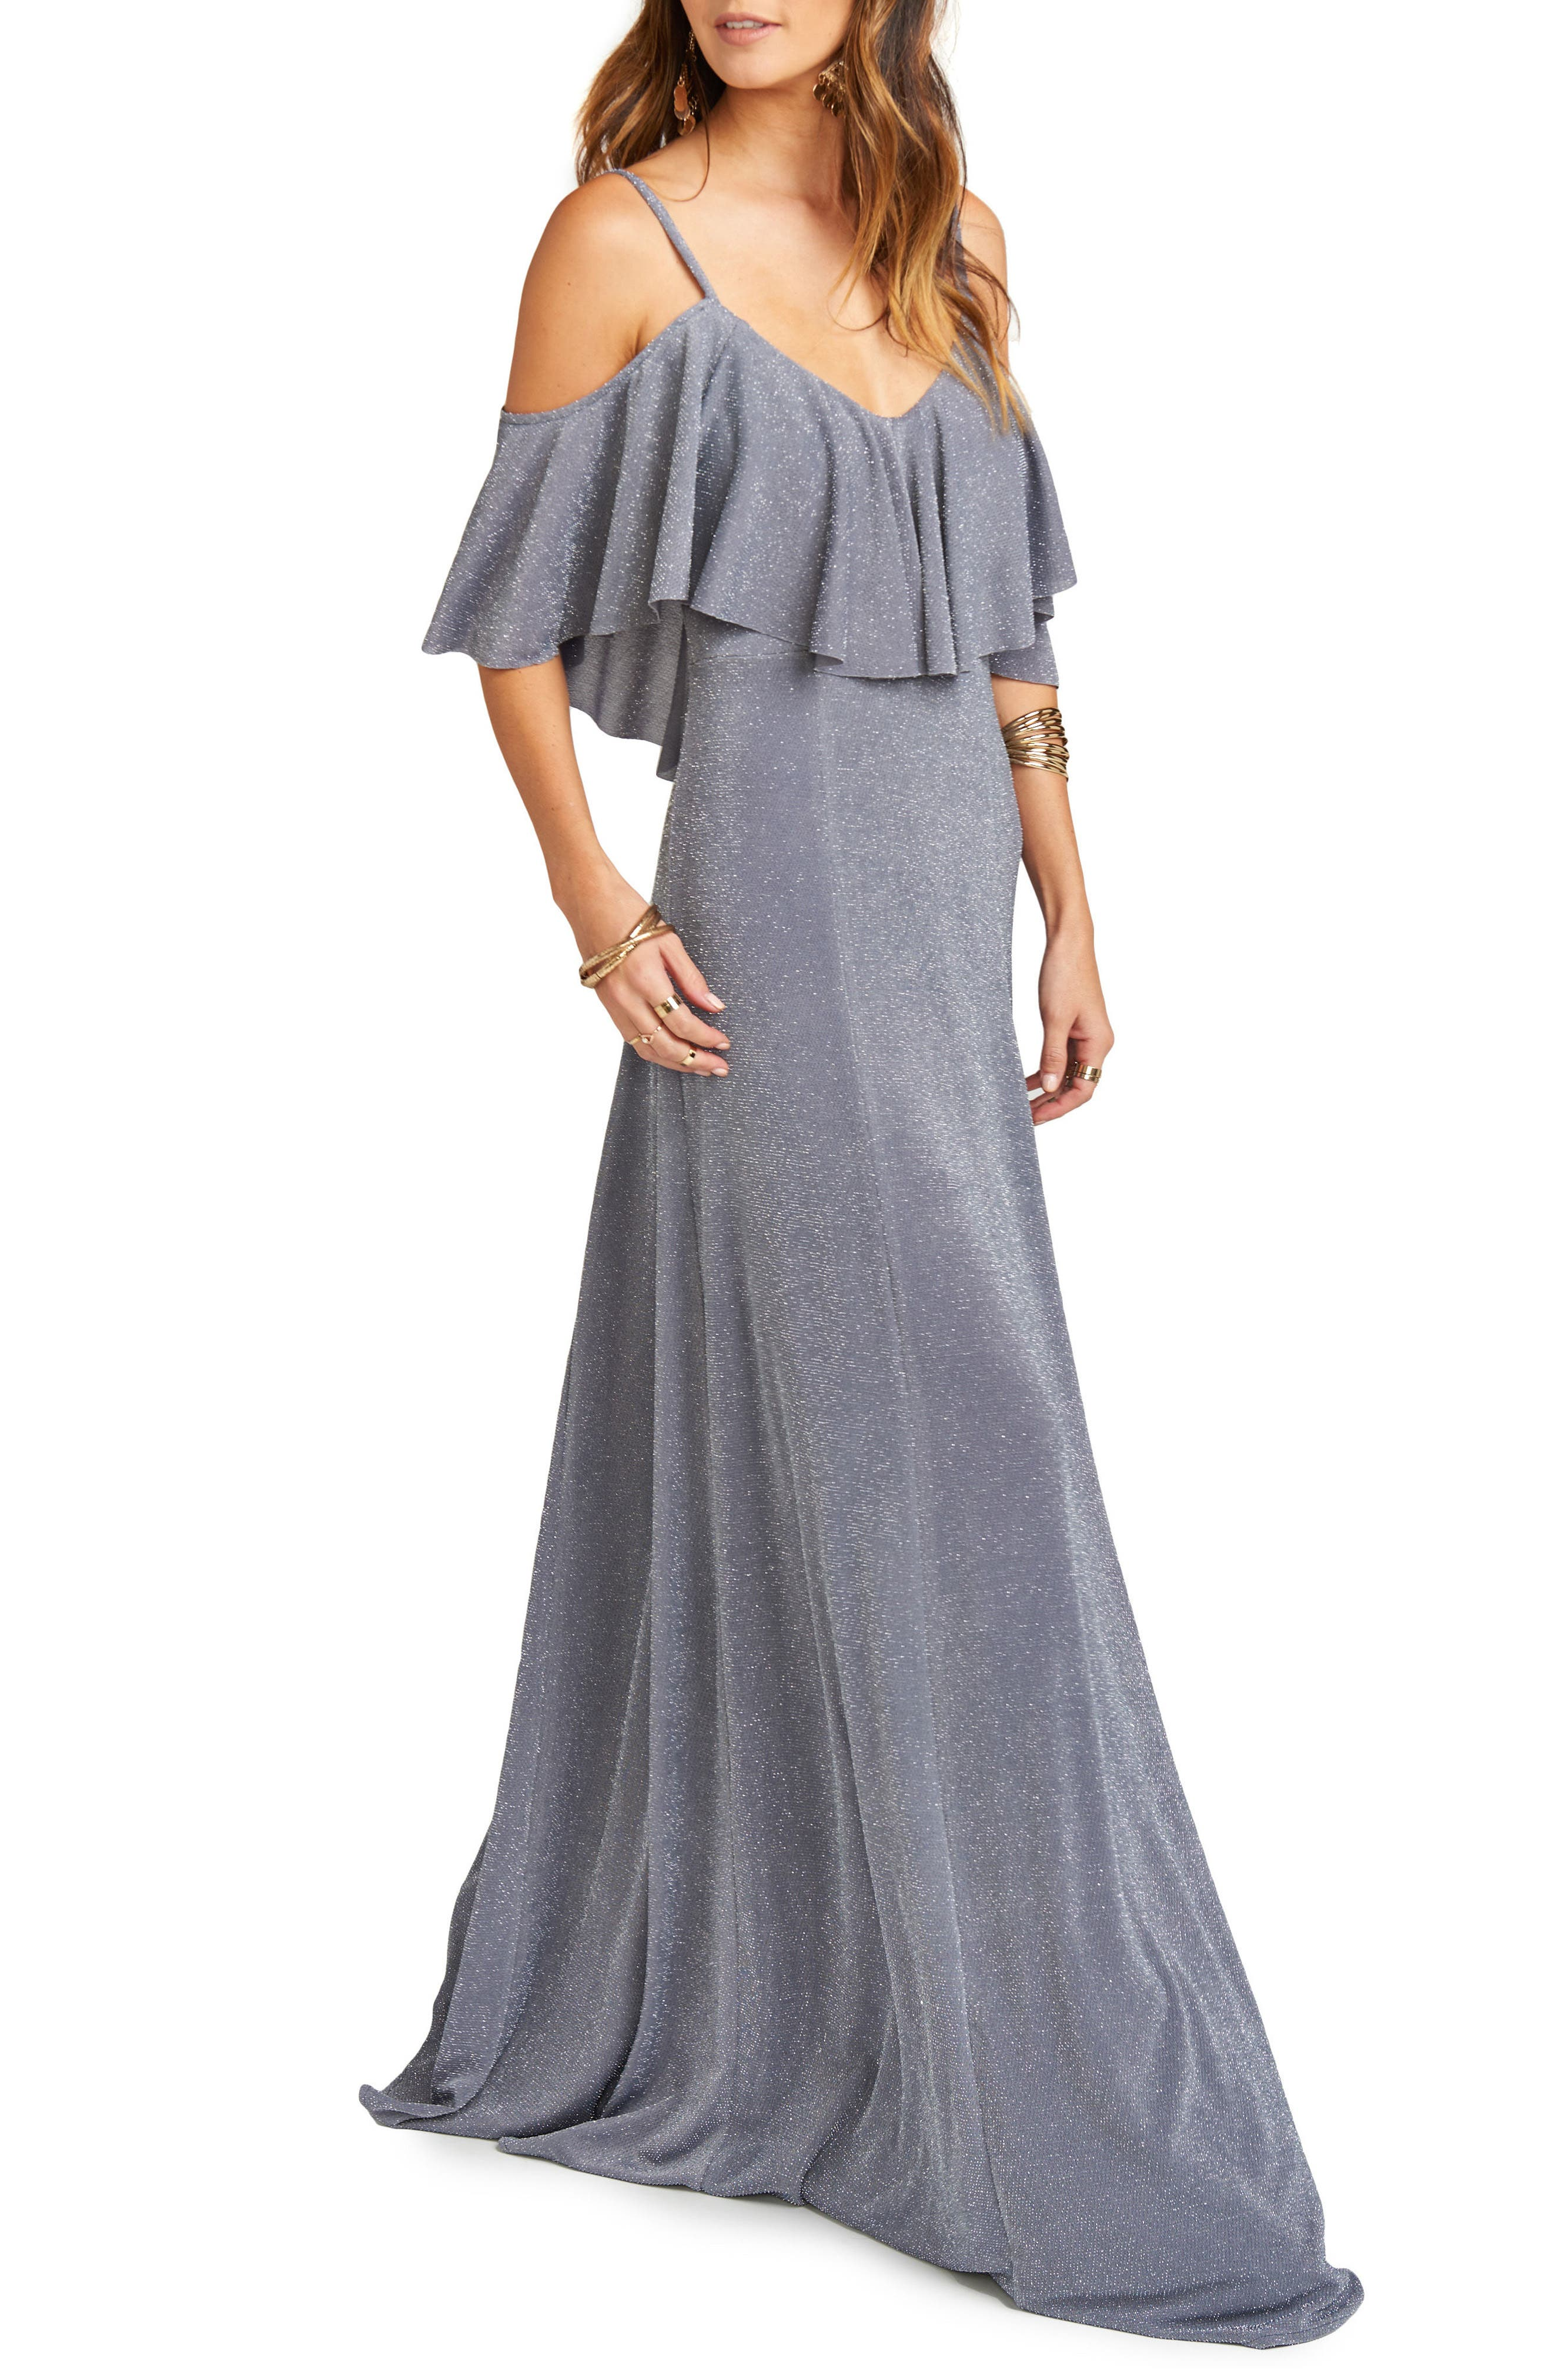 Renee Ruffle Gown,                             Alternate thumbnail 3, color,                             030